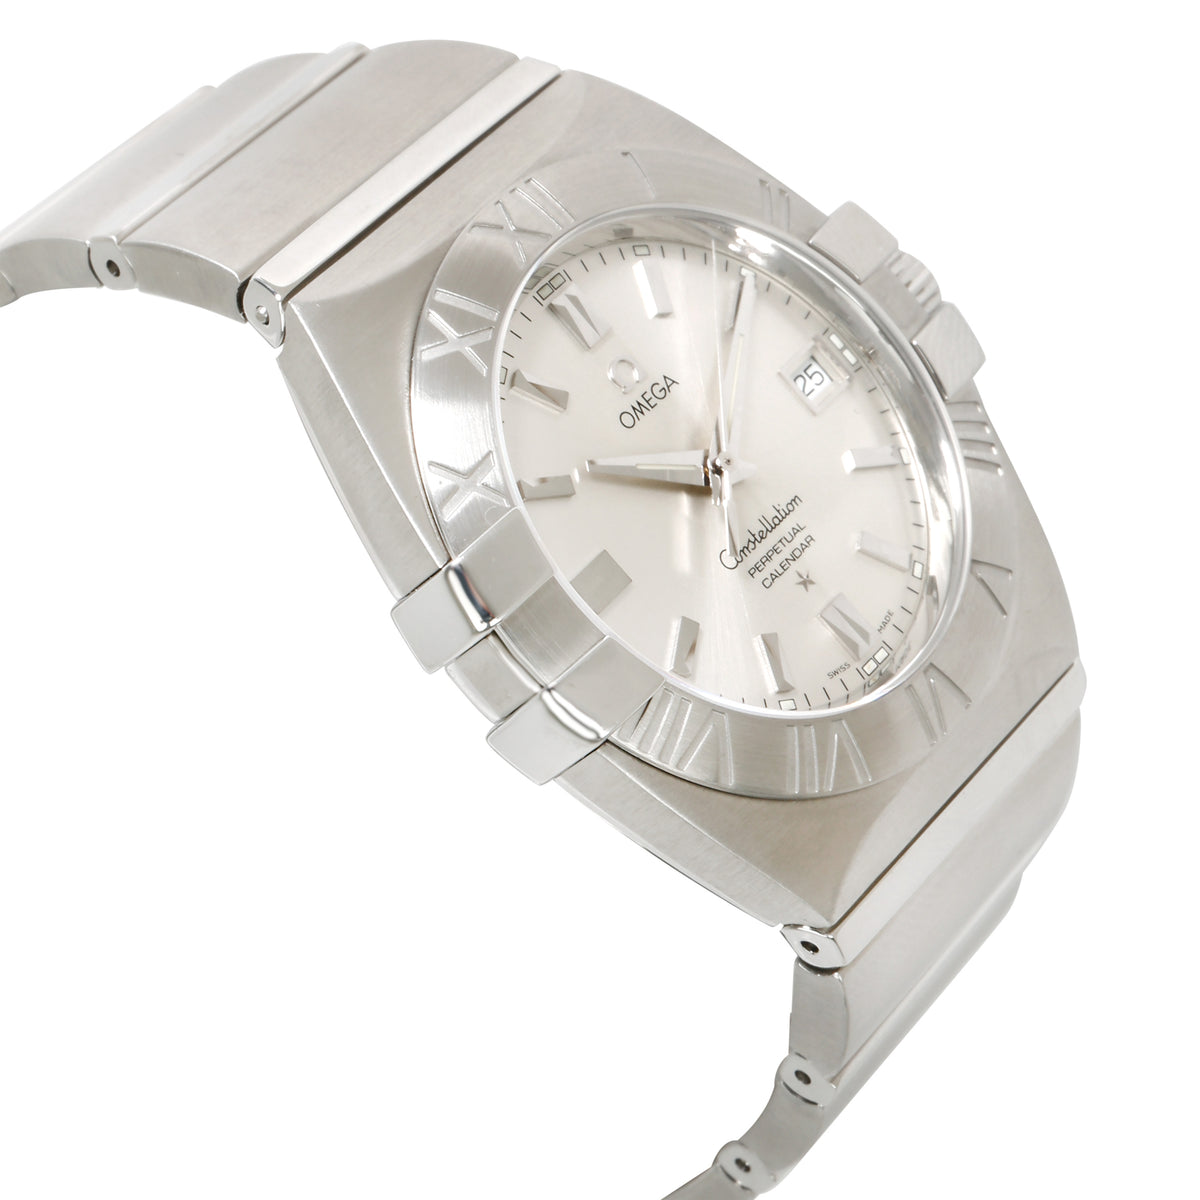 Omega Double Eagle 1513.30 Men's Watch in  Stainless Steel